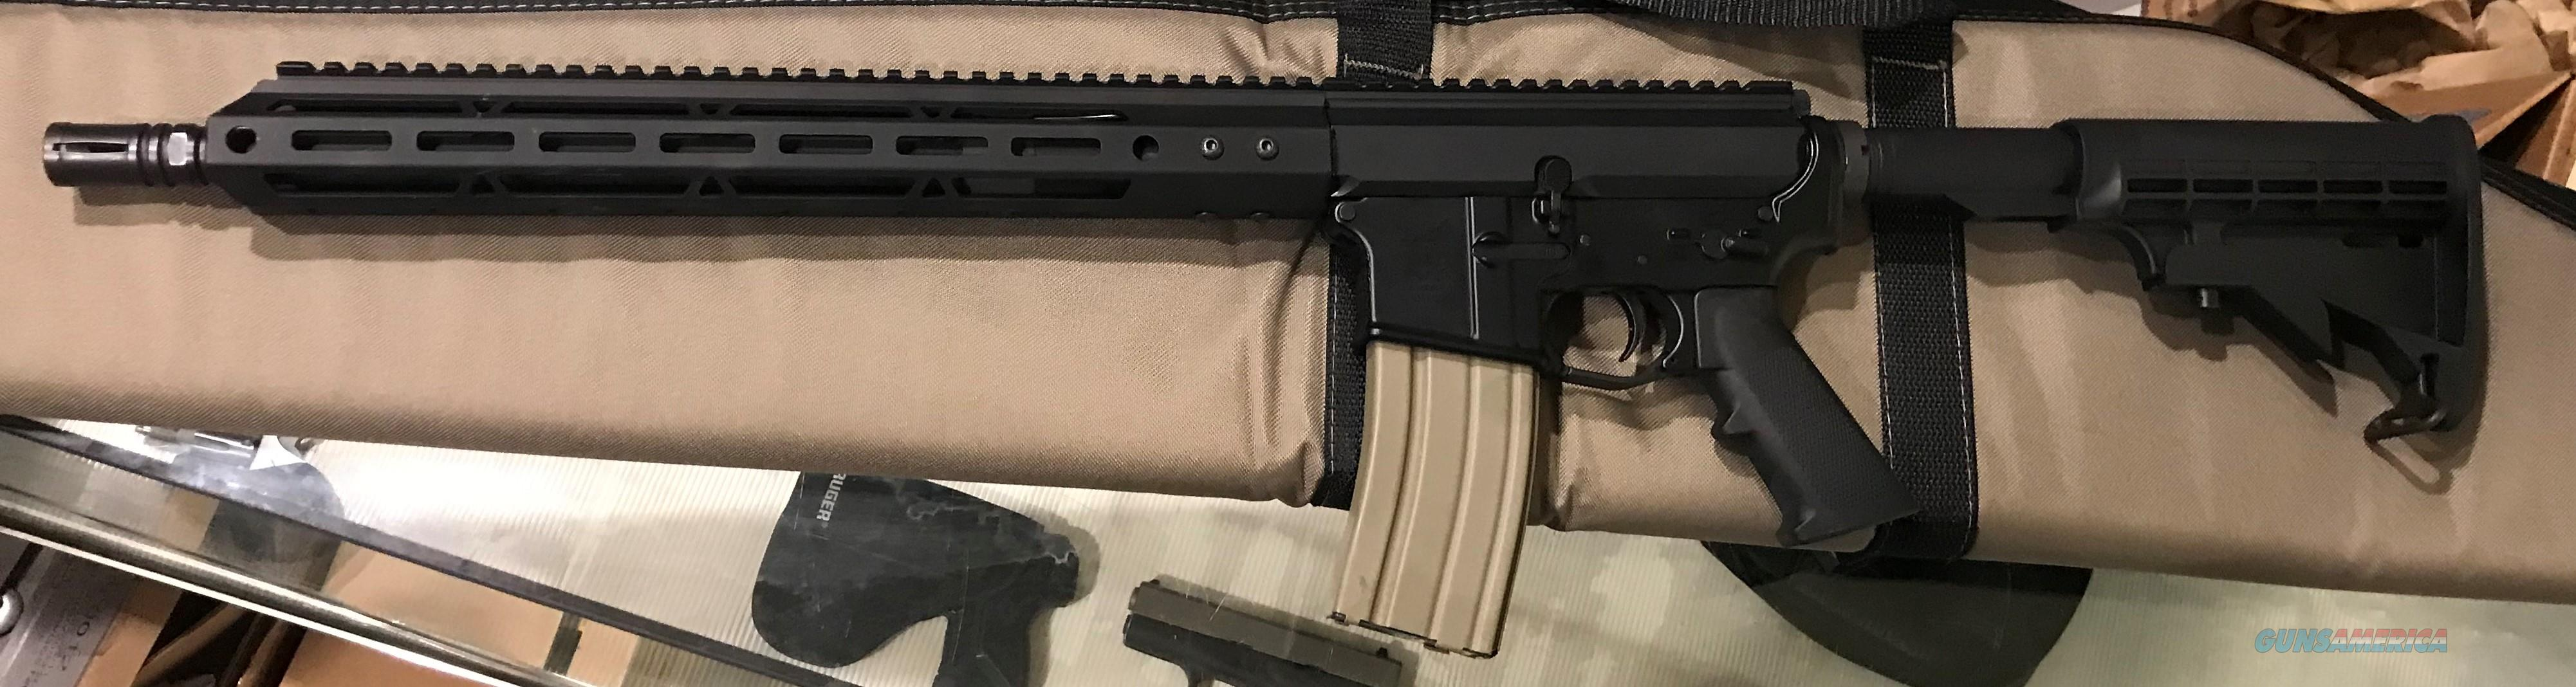 AR15 in 300 Blackout AR-15 .300 ACC Blackout / 300 Whisper New in soft case (No Card Fees Added)  Guns > Rifles > AR-15 Rifles - Small Manufacturers > Complete Rifle